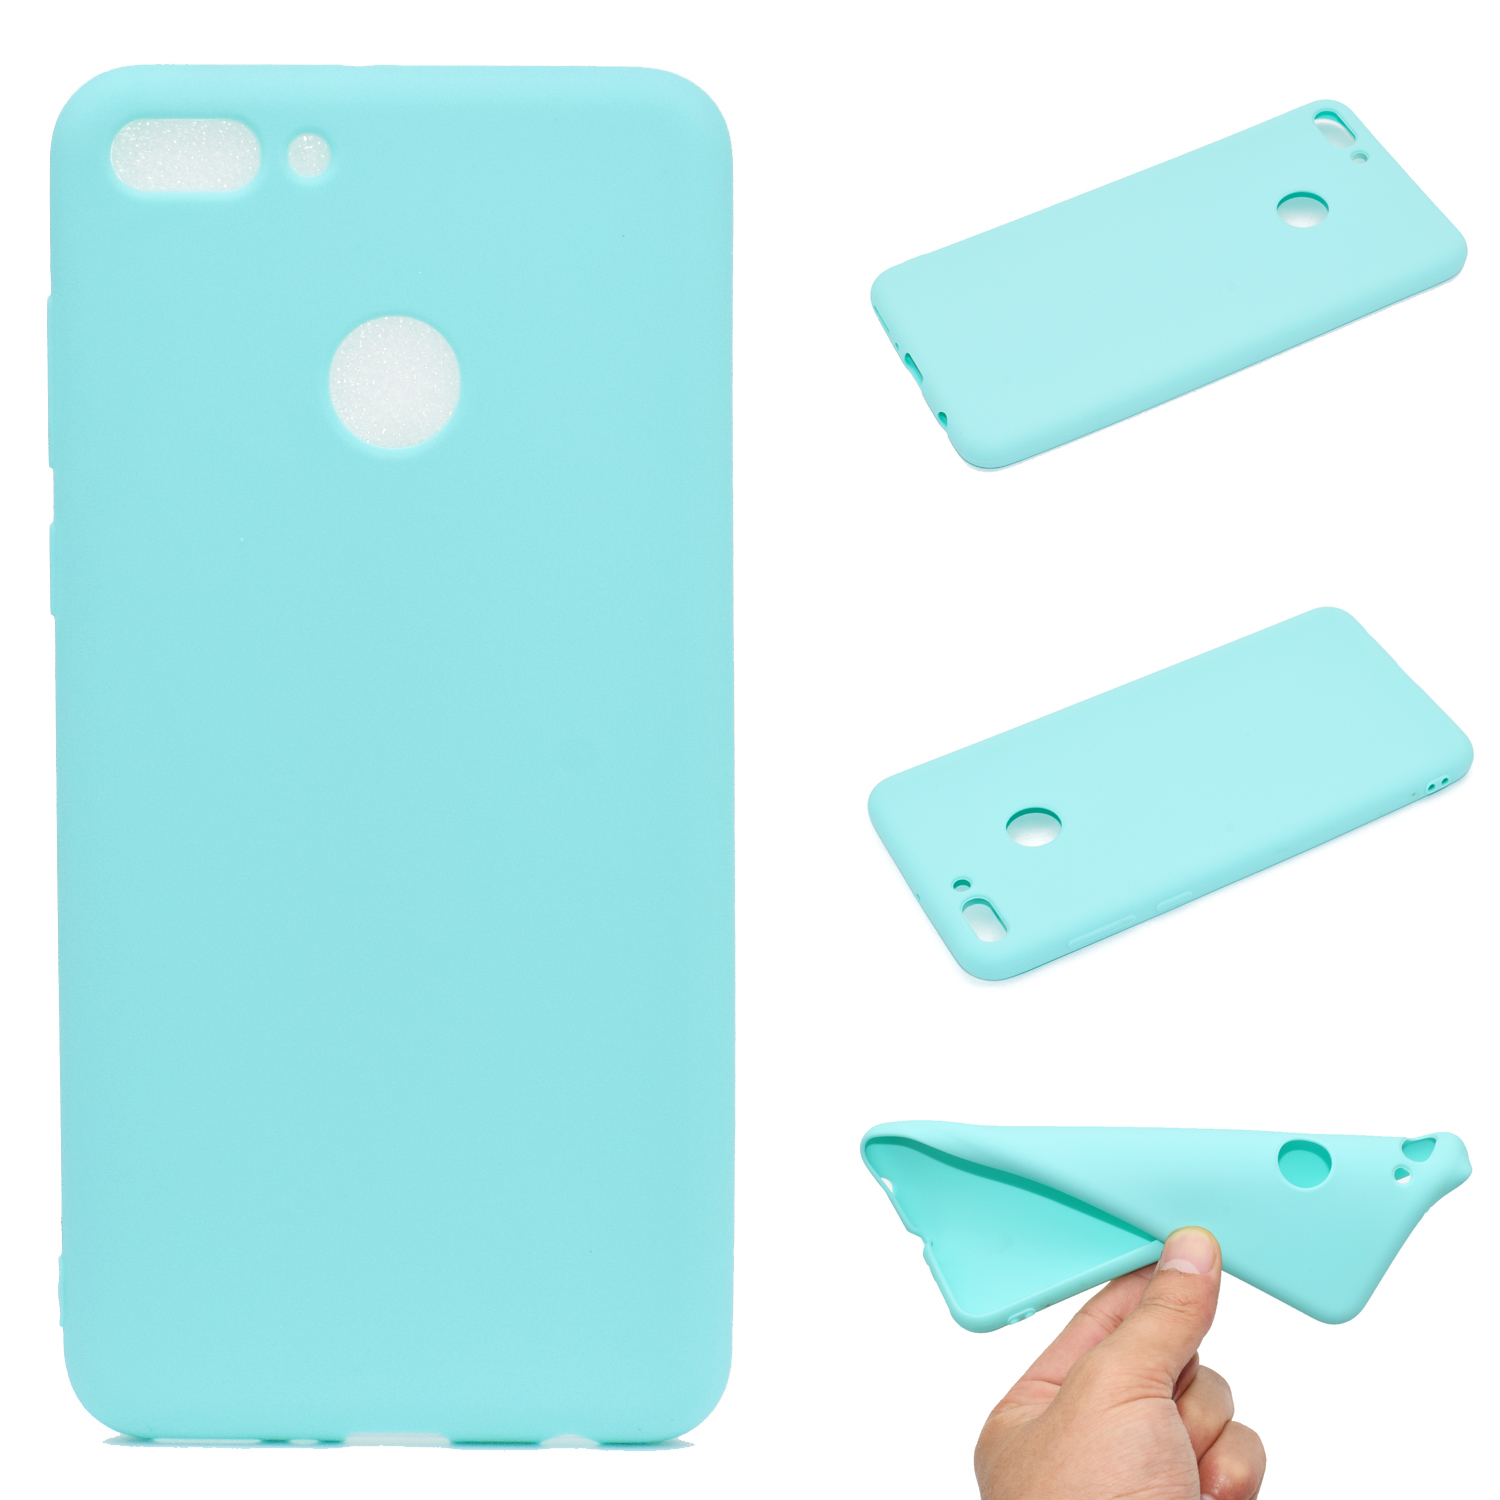 for HUAWEI Y9 2018 Lovely Candy Color Matte TPU Anti-scratch Non-slip Protective Cover Back Case Light blue